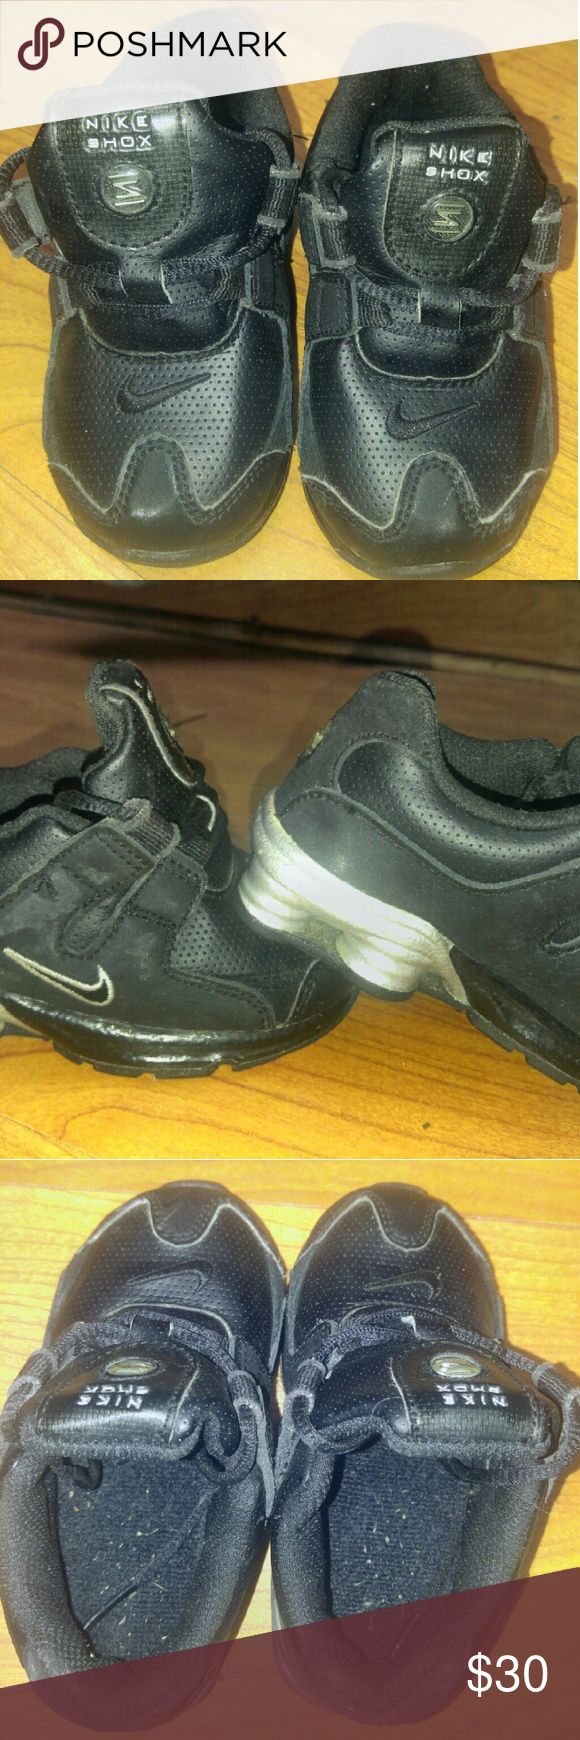 Toddlers Nike Shox sneakers Great pair of shoes! In excellent condition! Hardly worn. Still look brand new. IM me if you would like more pics. Nike Shox Shoes Sneakers